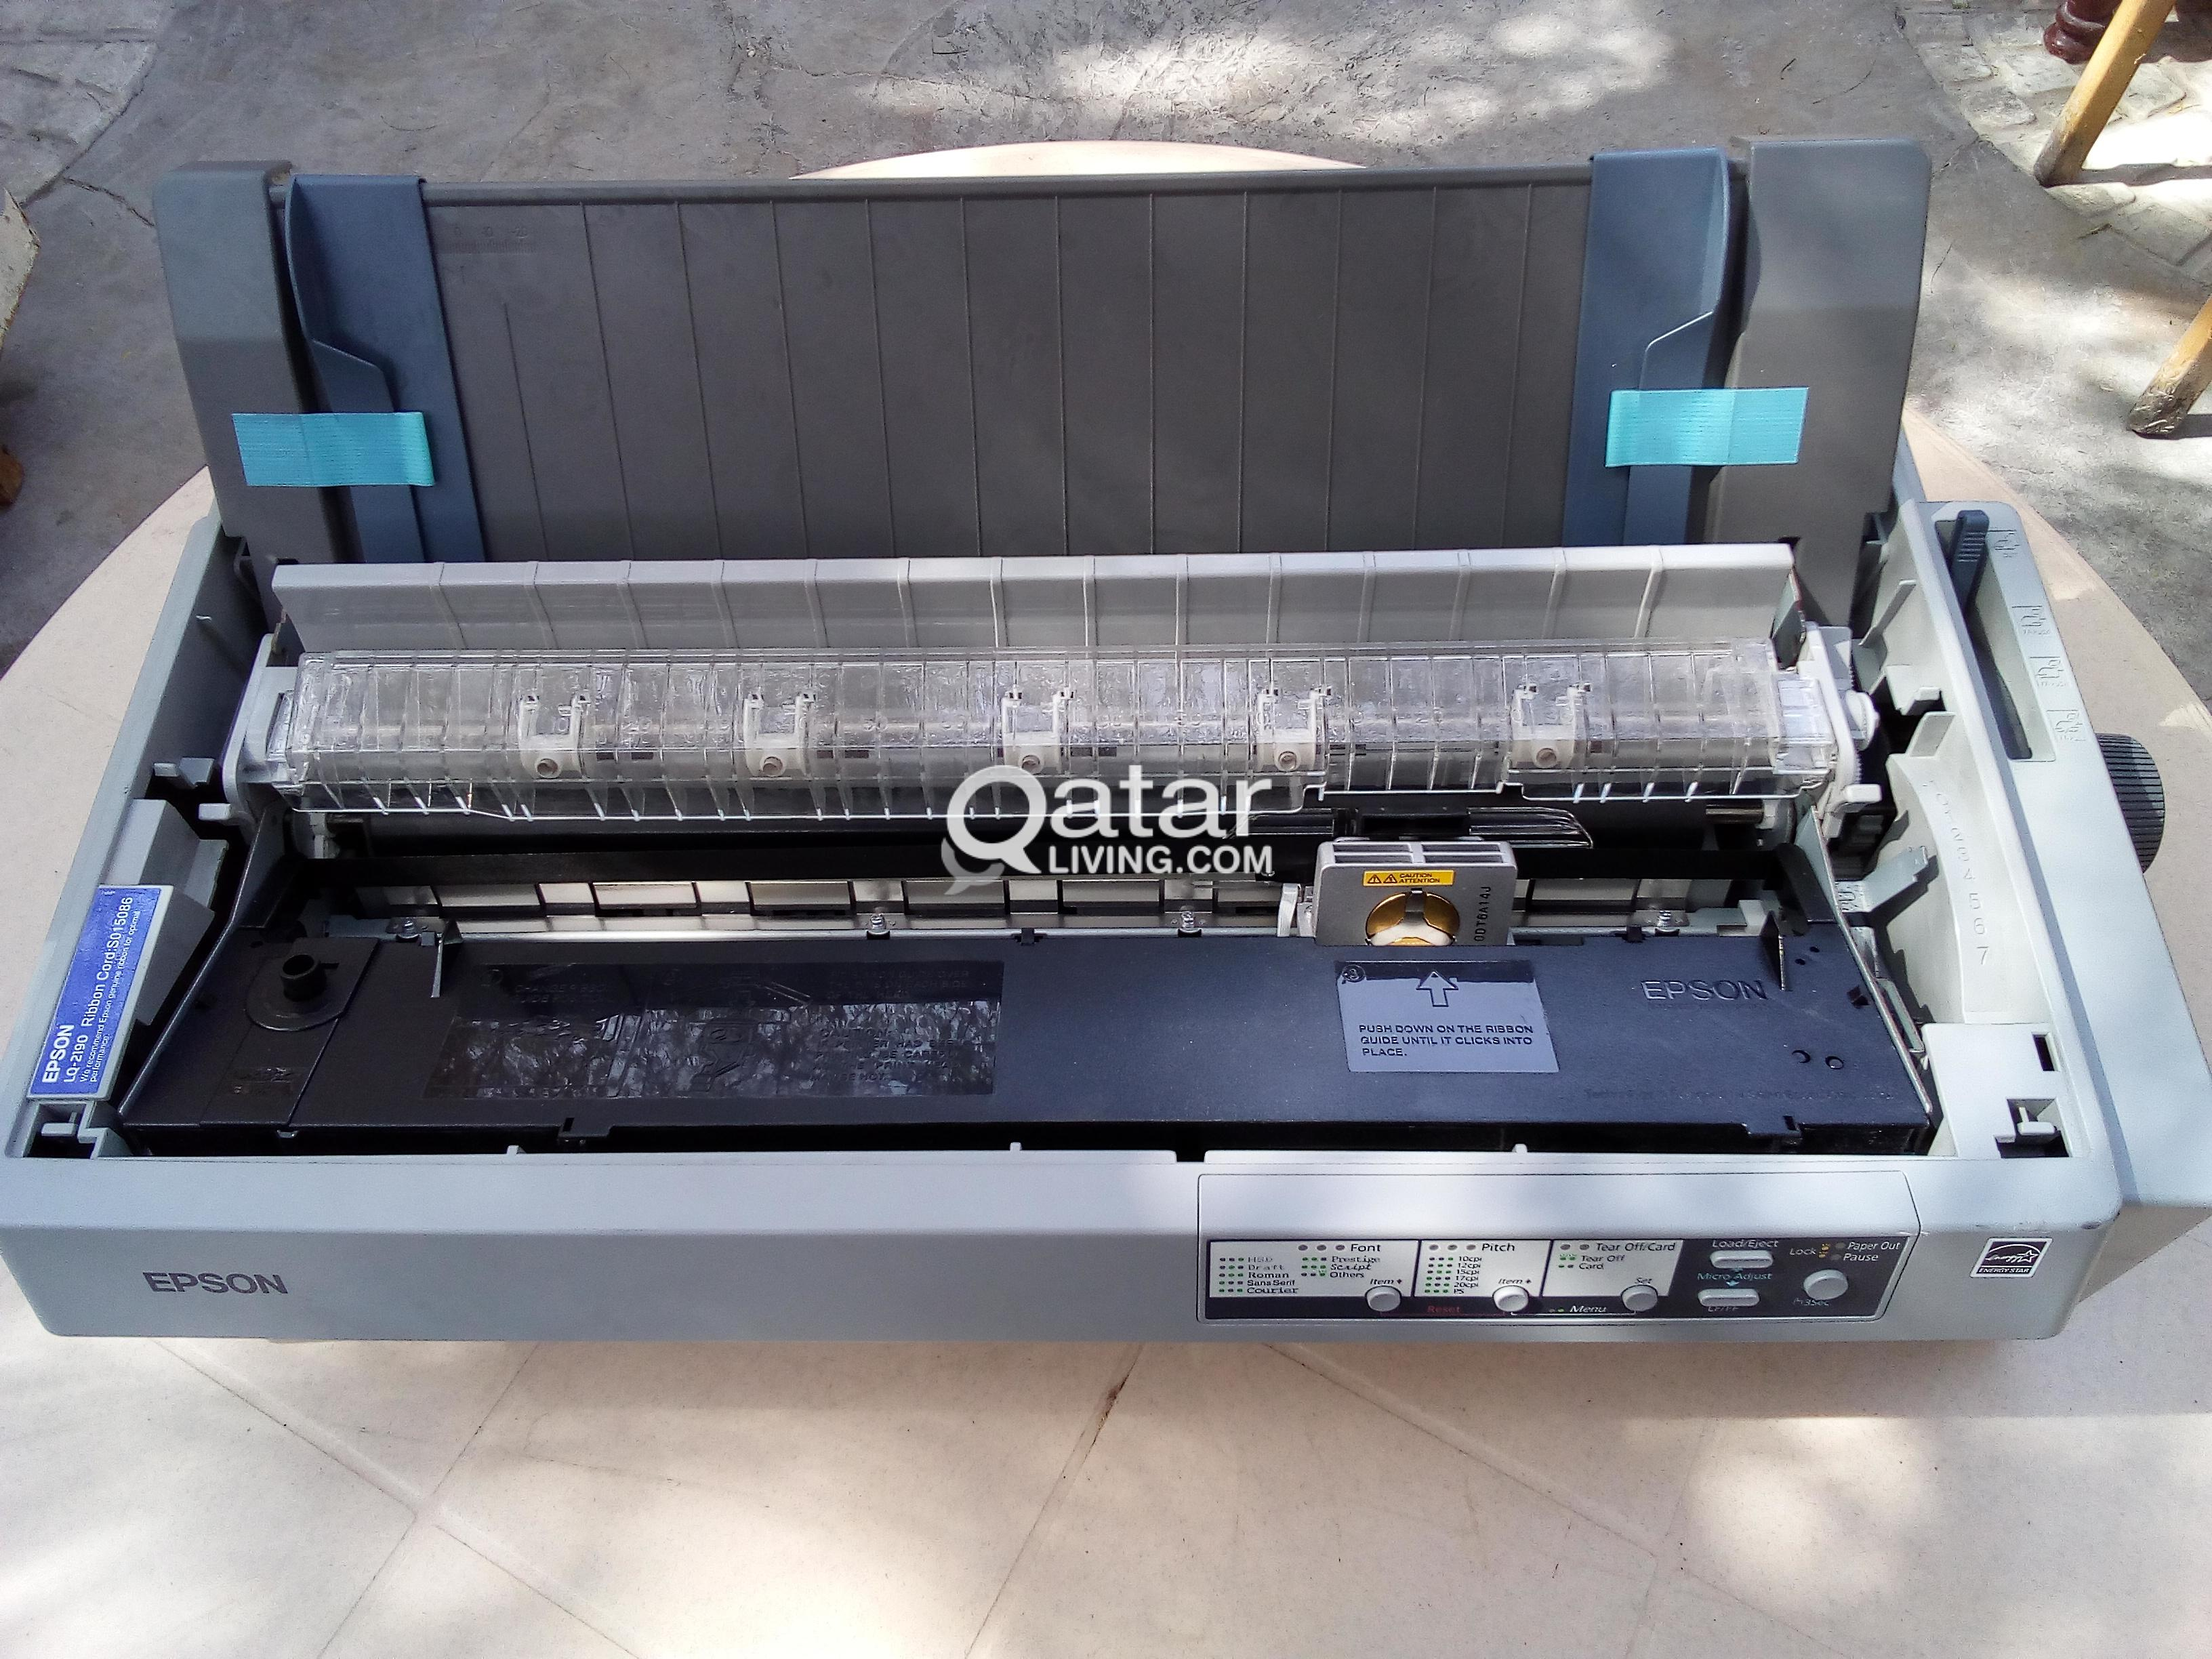 Epson LQ 2190 Invoice Printer   Qatar Living title